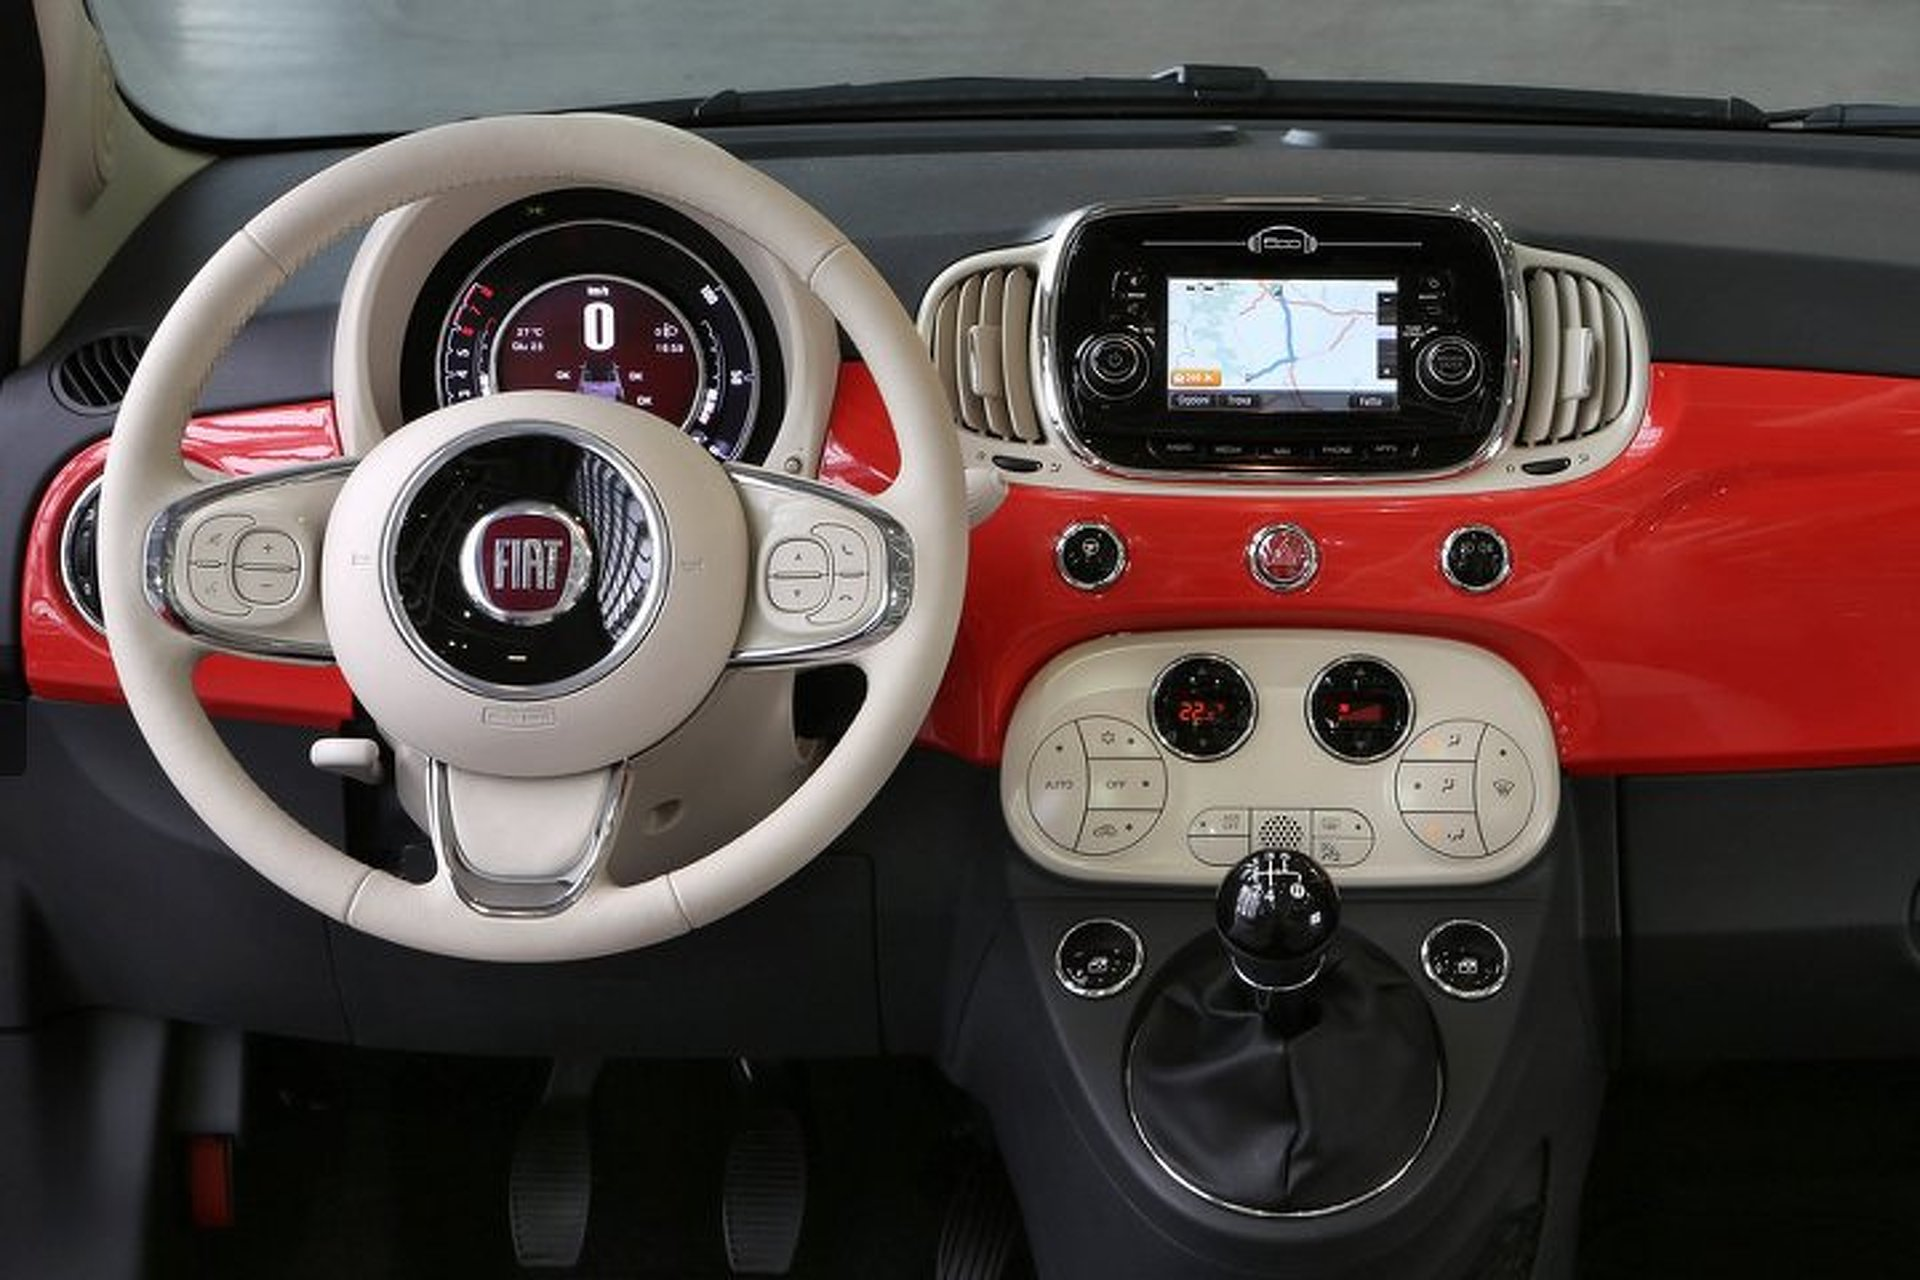 Fiat 500 Gets a Facelift, but Is it for the States?